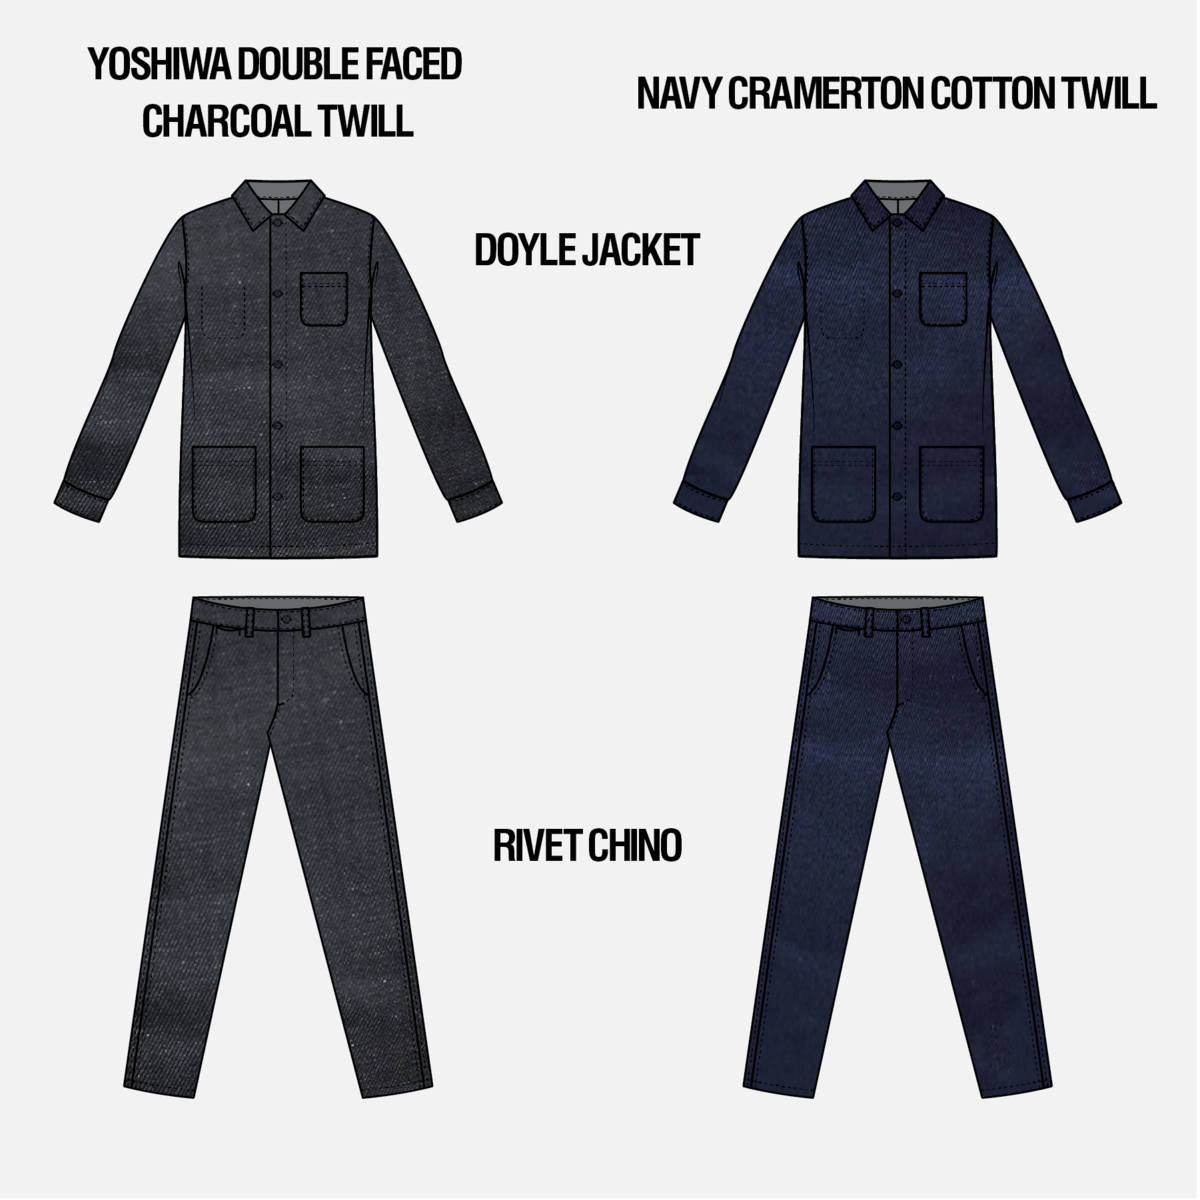 CHARCOAL AND NAVY TWILL.png